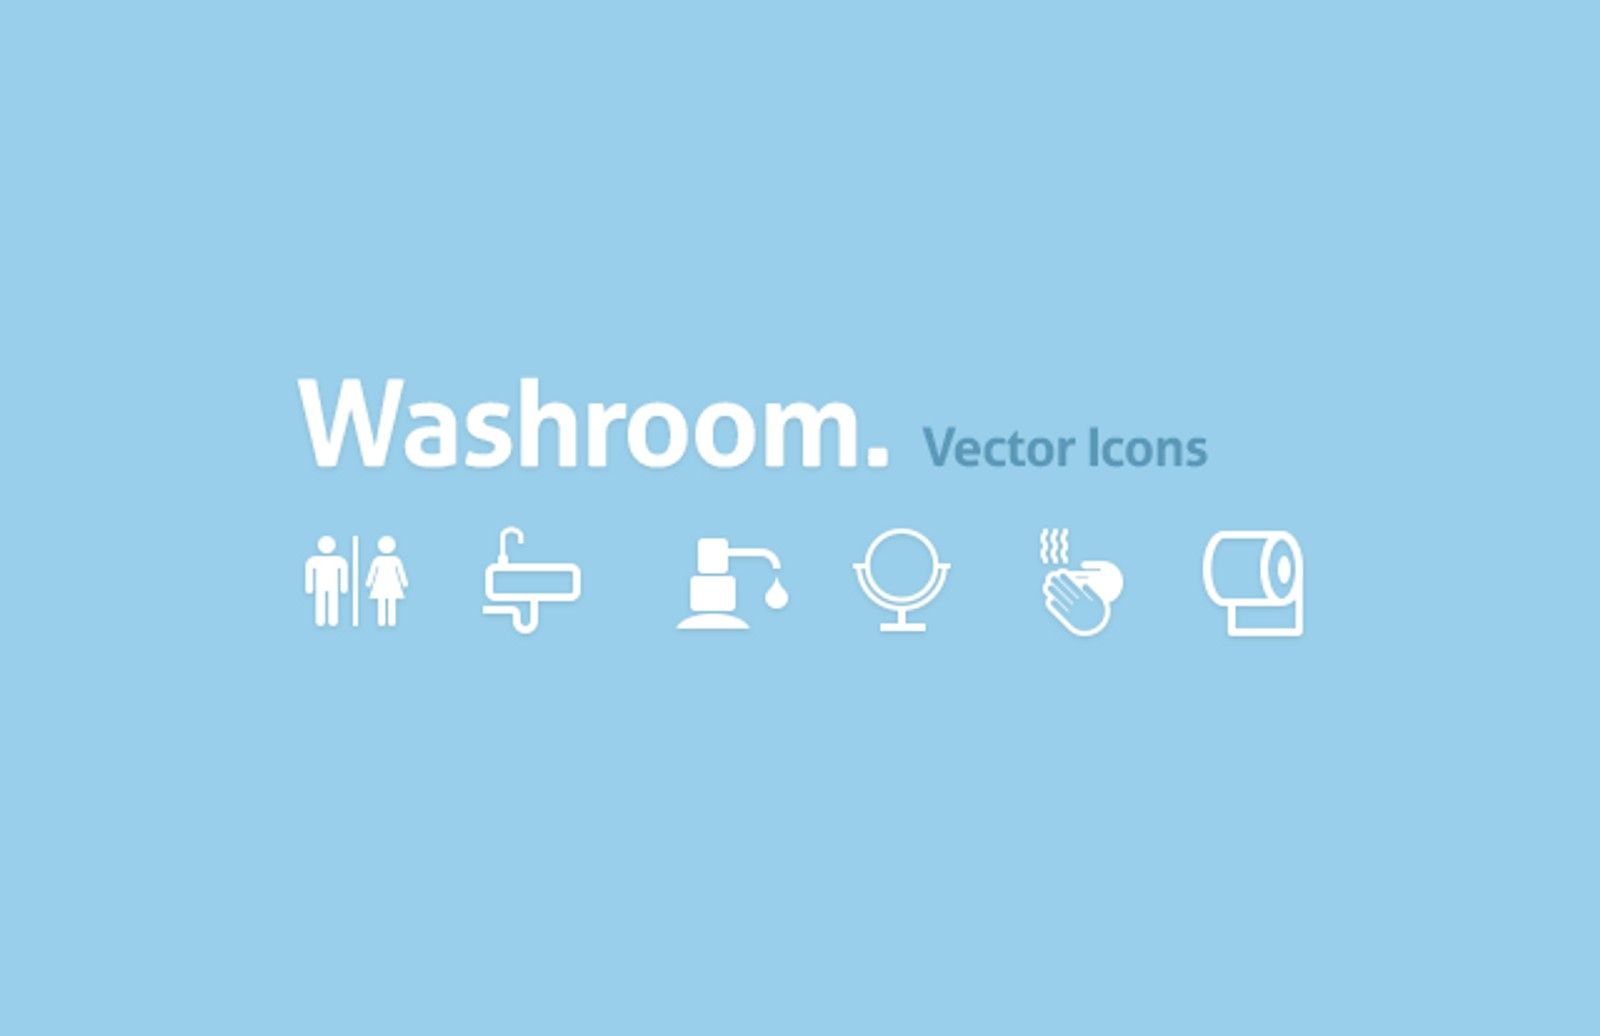 Washroom  Vector  Icons  Preview1